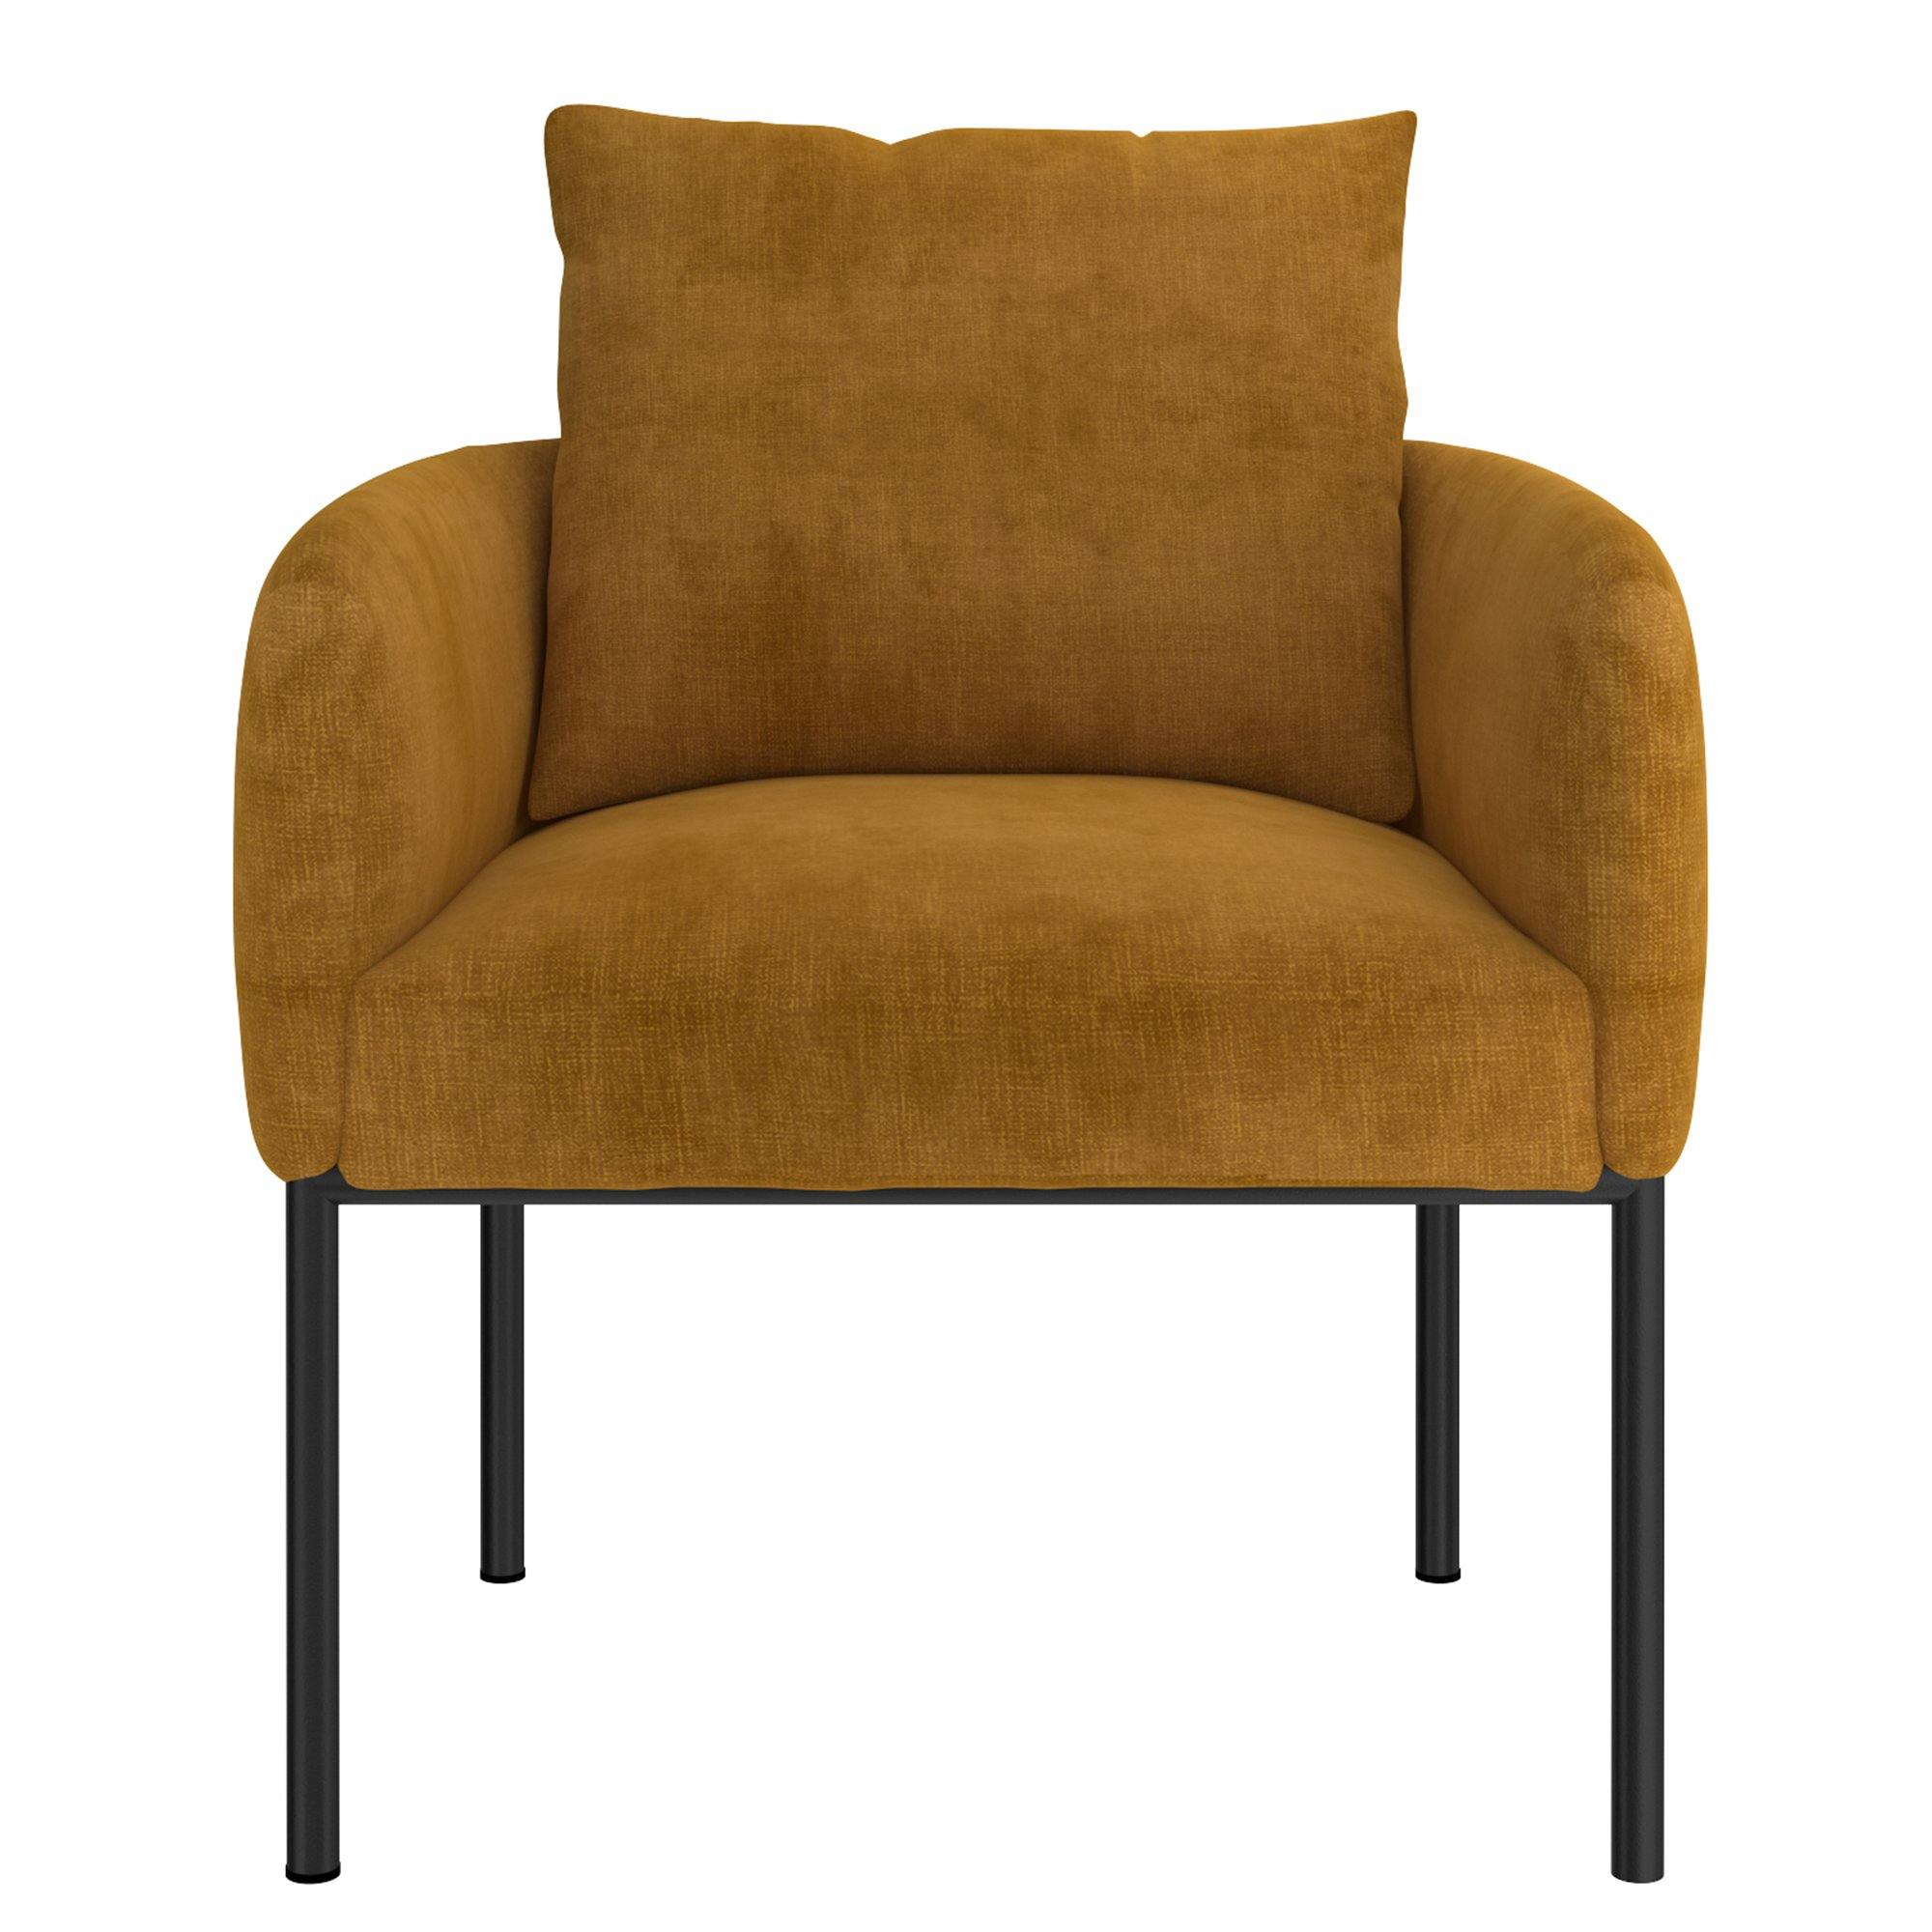 Petrie Mustard Accent Chair - Reimagine Designs